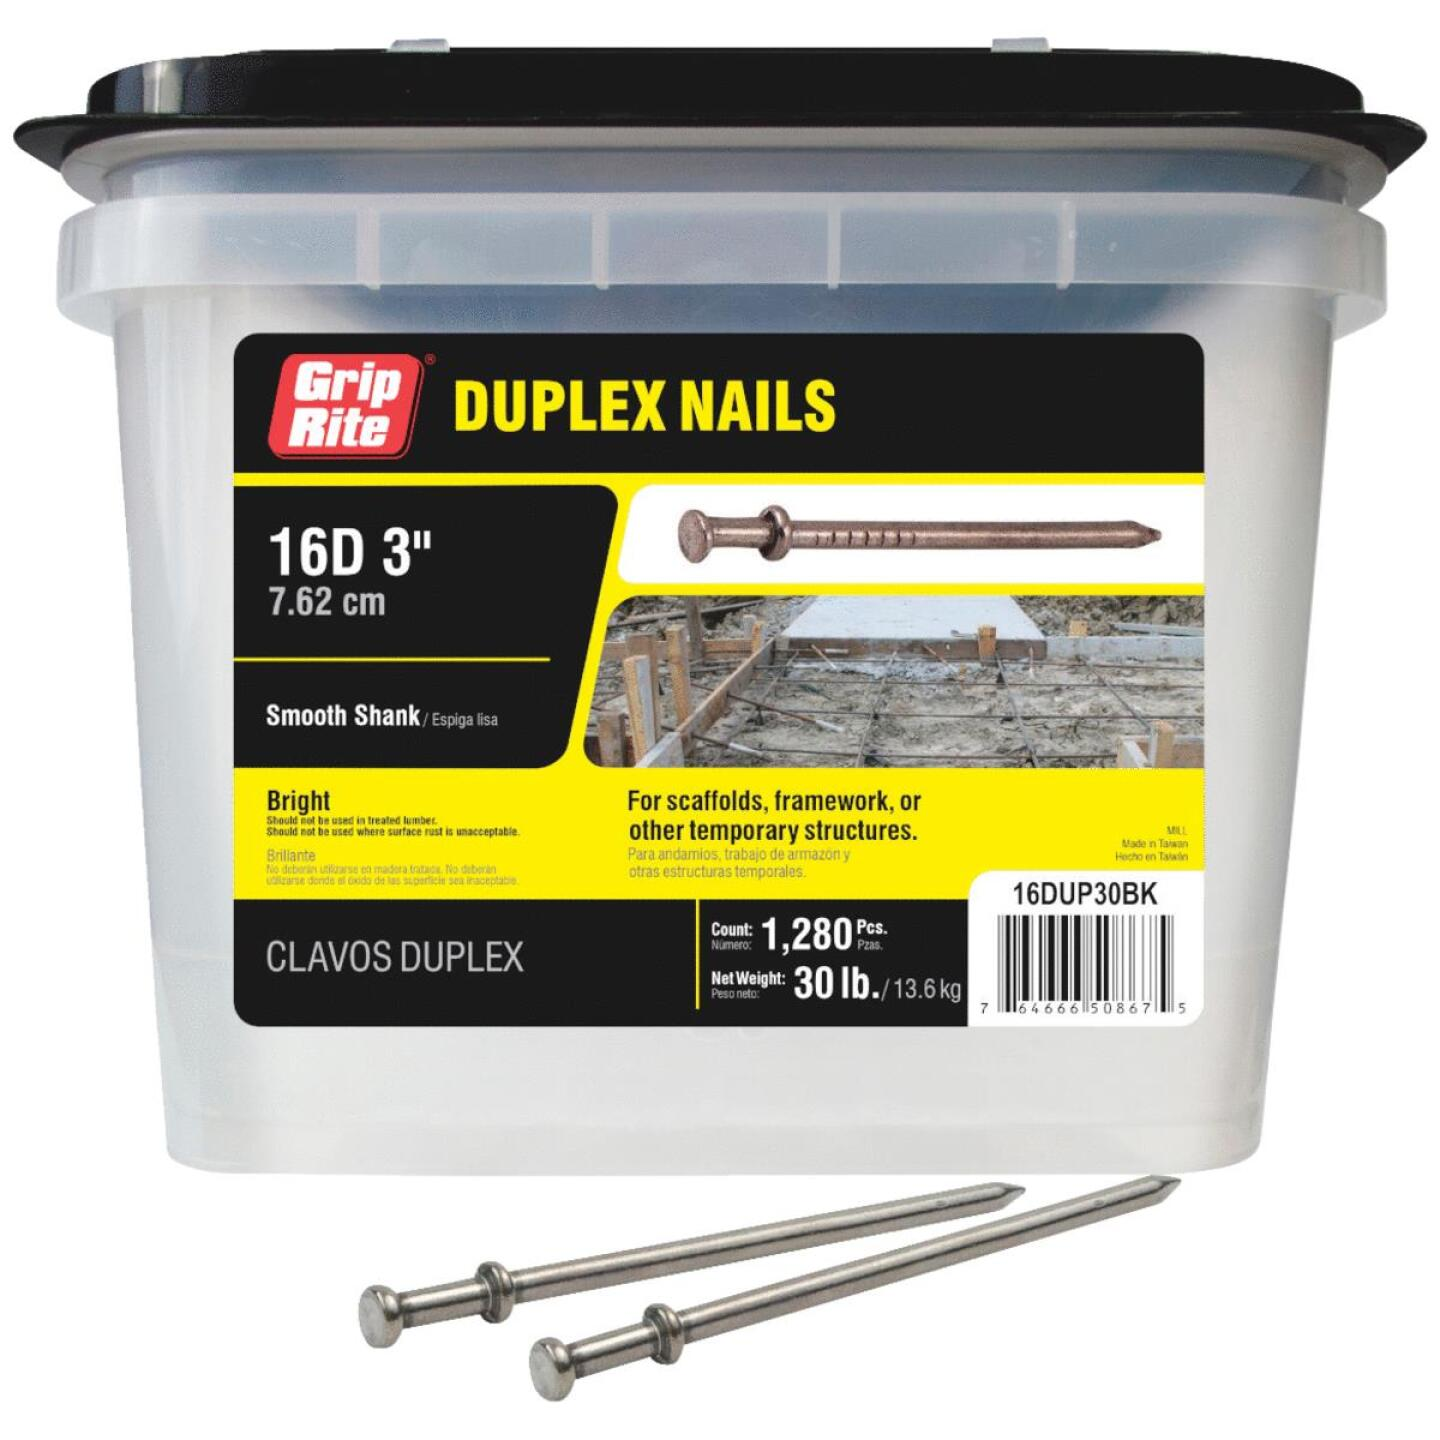 Grip-Rite 16d x 3 In. Bright Duplex Framing Nails (1280 Ct., 30 Lb.) Image 1